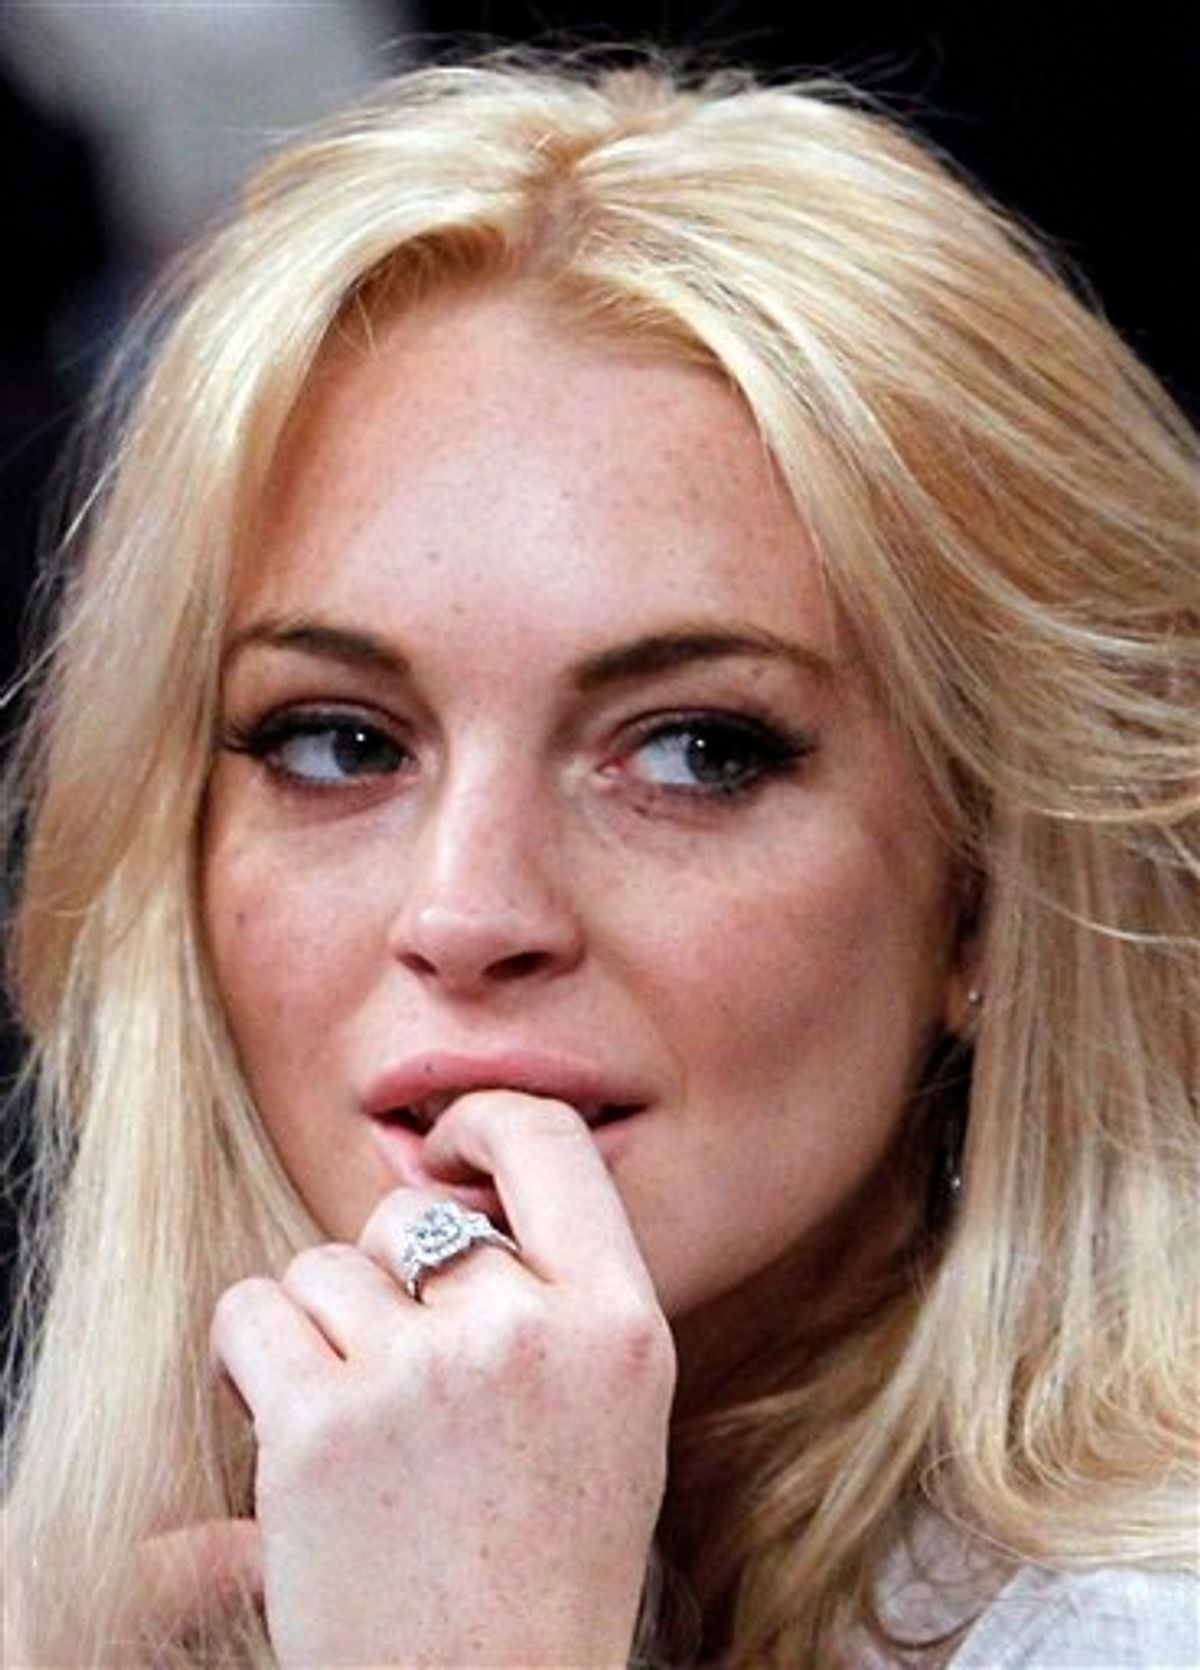 FILE - In this Jan. 9, 2011 file photo, Lindsay Lohan attends the Los Angeles Lakers New York Knicks NBA basketball game in Los Angeles. (AP Photo/Alex Gallardo, File) (AP)